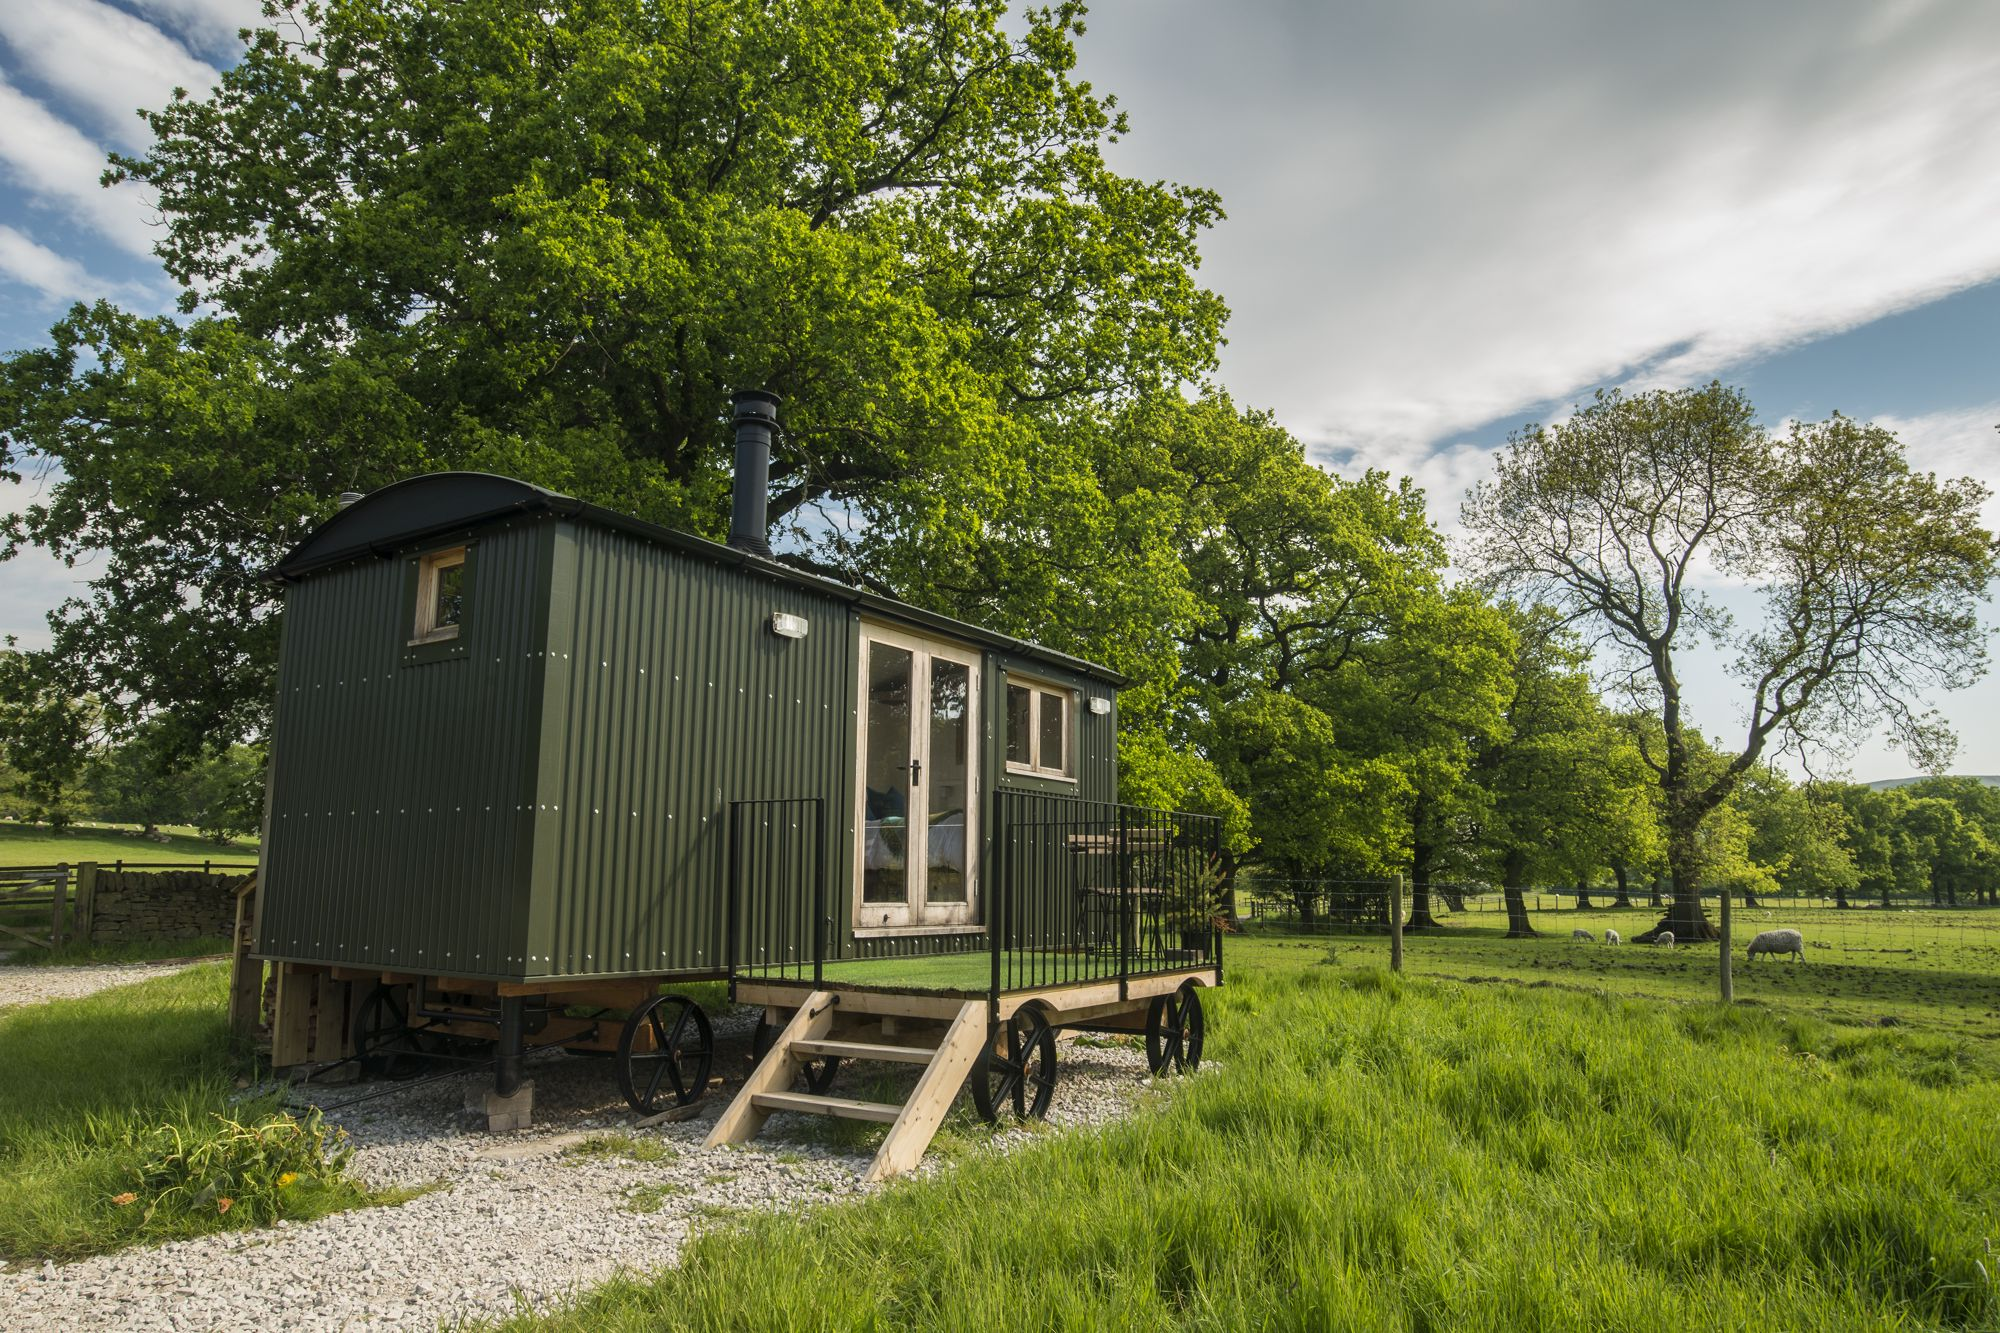 Shepherds hut at Whitelee Farm in the Peak District National Park.